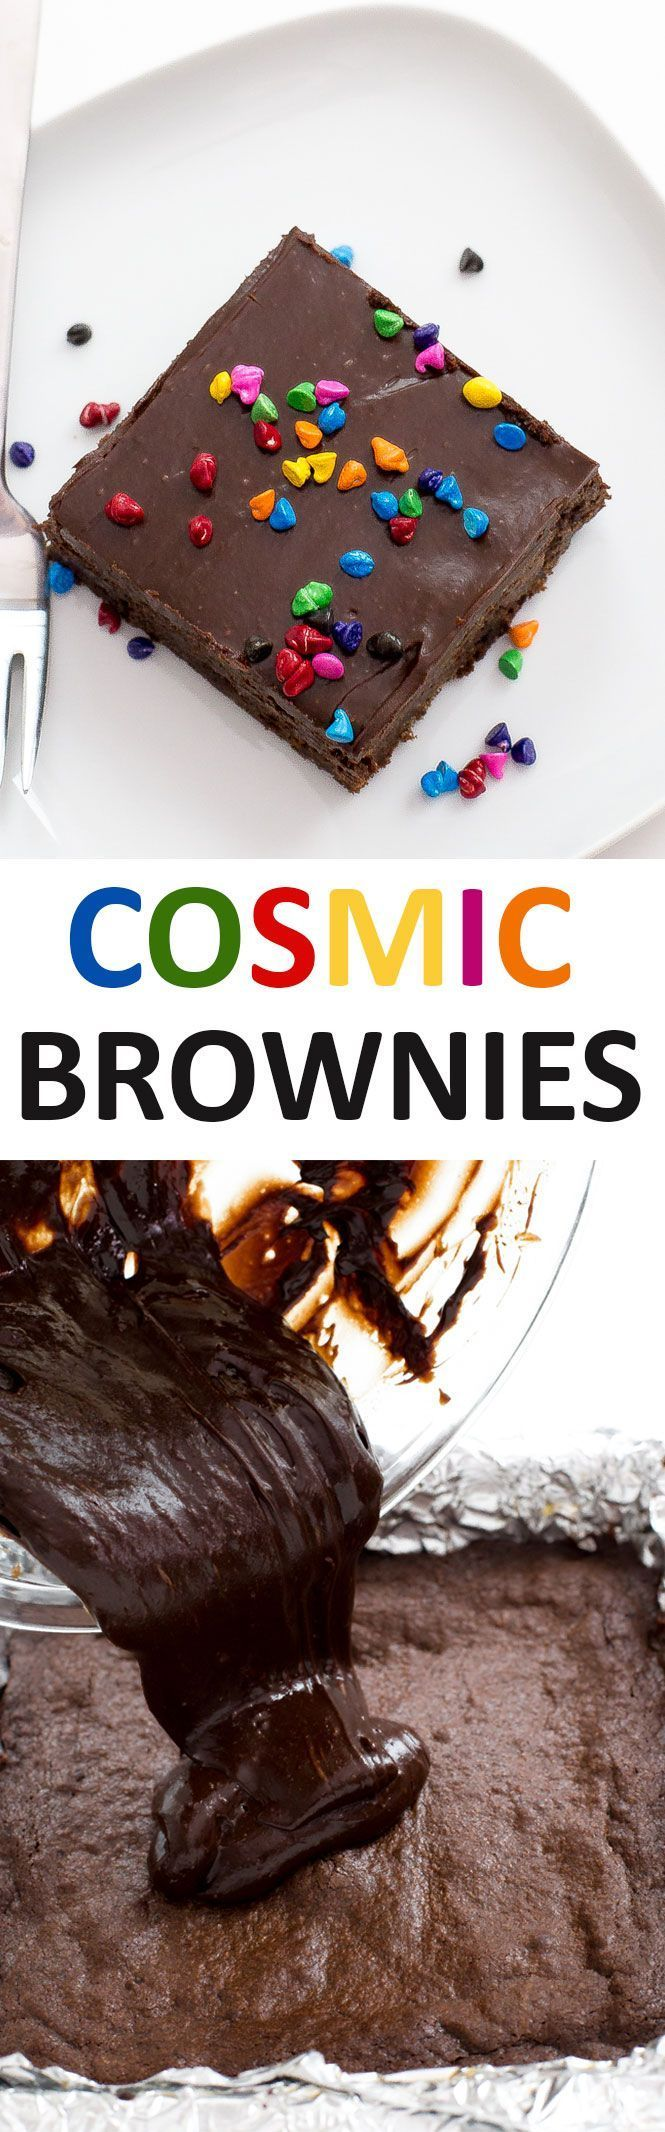 Copycat Cosmic Brownies topped with a Chocolate Ganache and rainbow sprinkles! Super chocolatey, rich and chewy! Just like your childhood favorite. | Chef Savvy